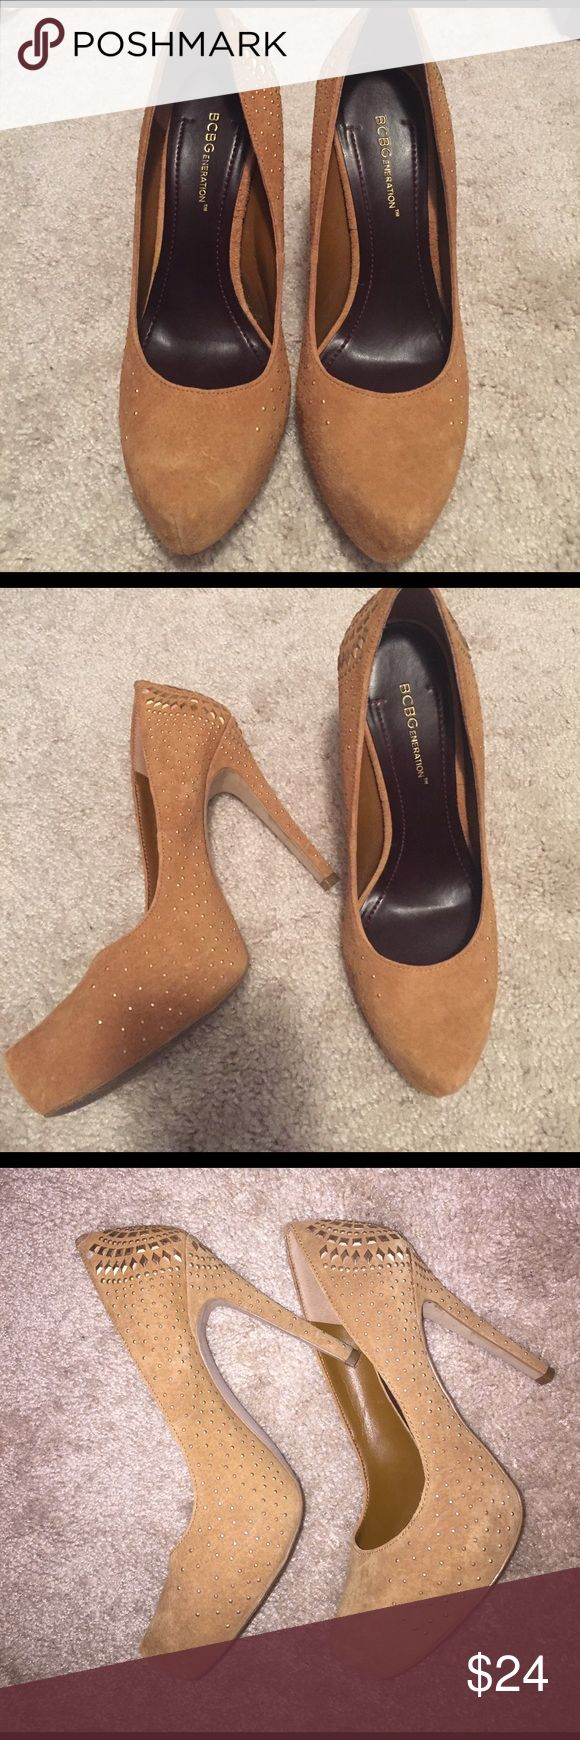 """BCBG Pumps - """"PRISM"""" Camel suede with gold studs Very high heel, beautiful BCBG suede pumps in camel color with gold studded detail all around sides and back including heel! Great condition! Worn ONCE! all signs of wear (if any visible) are shown in pics:) BCBGeneration Shoes Heels"""